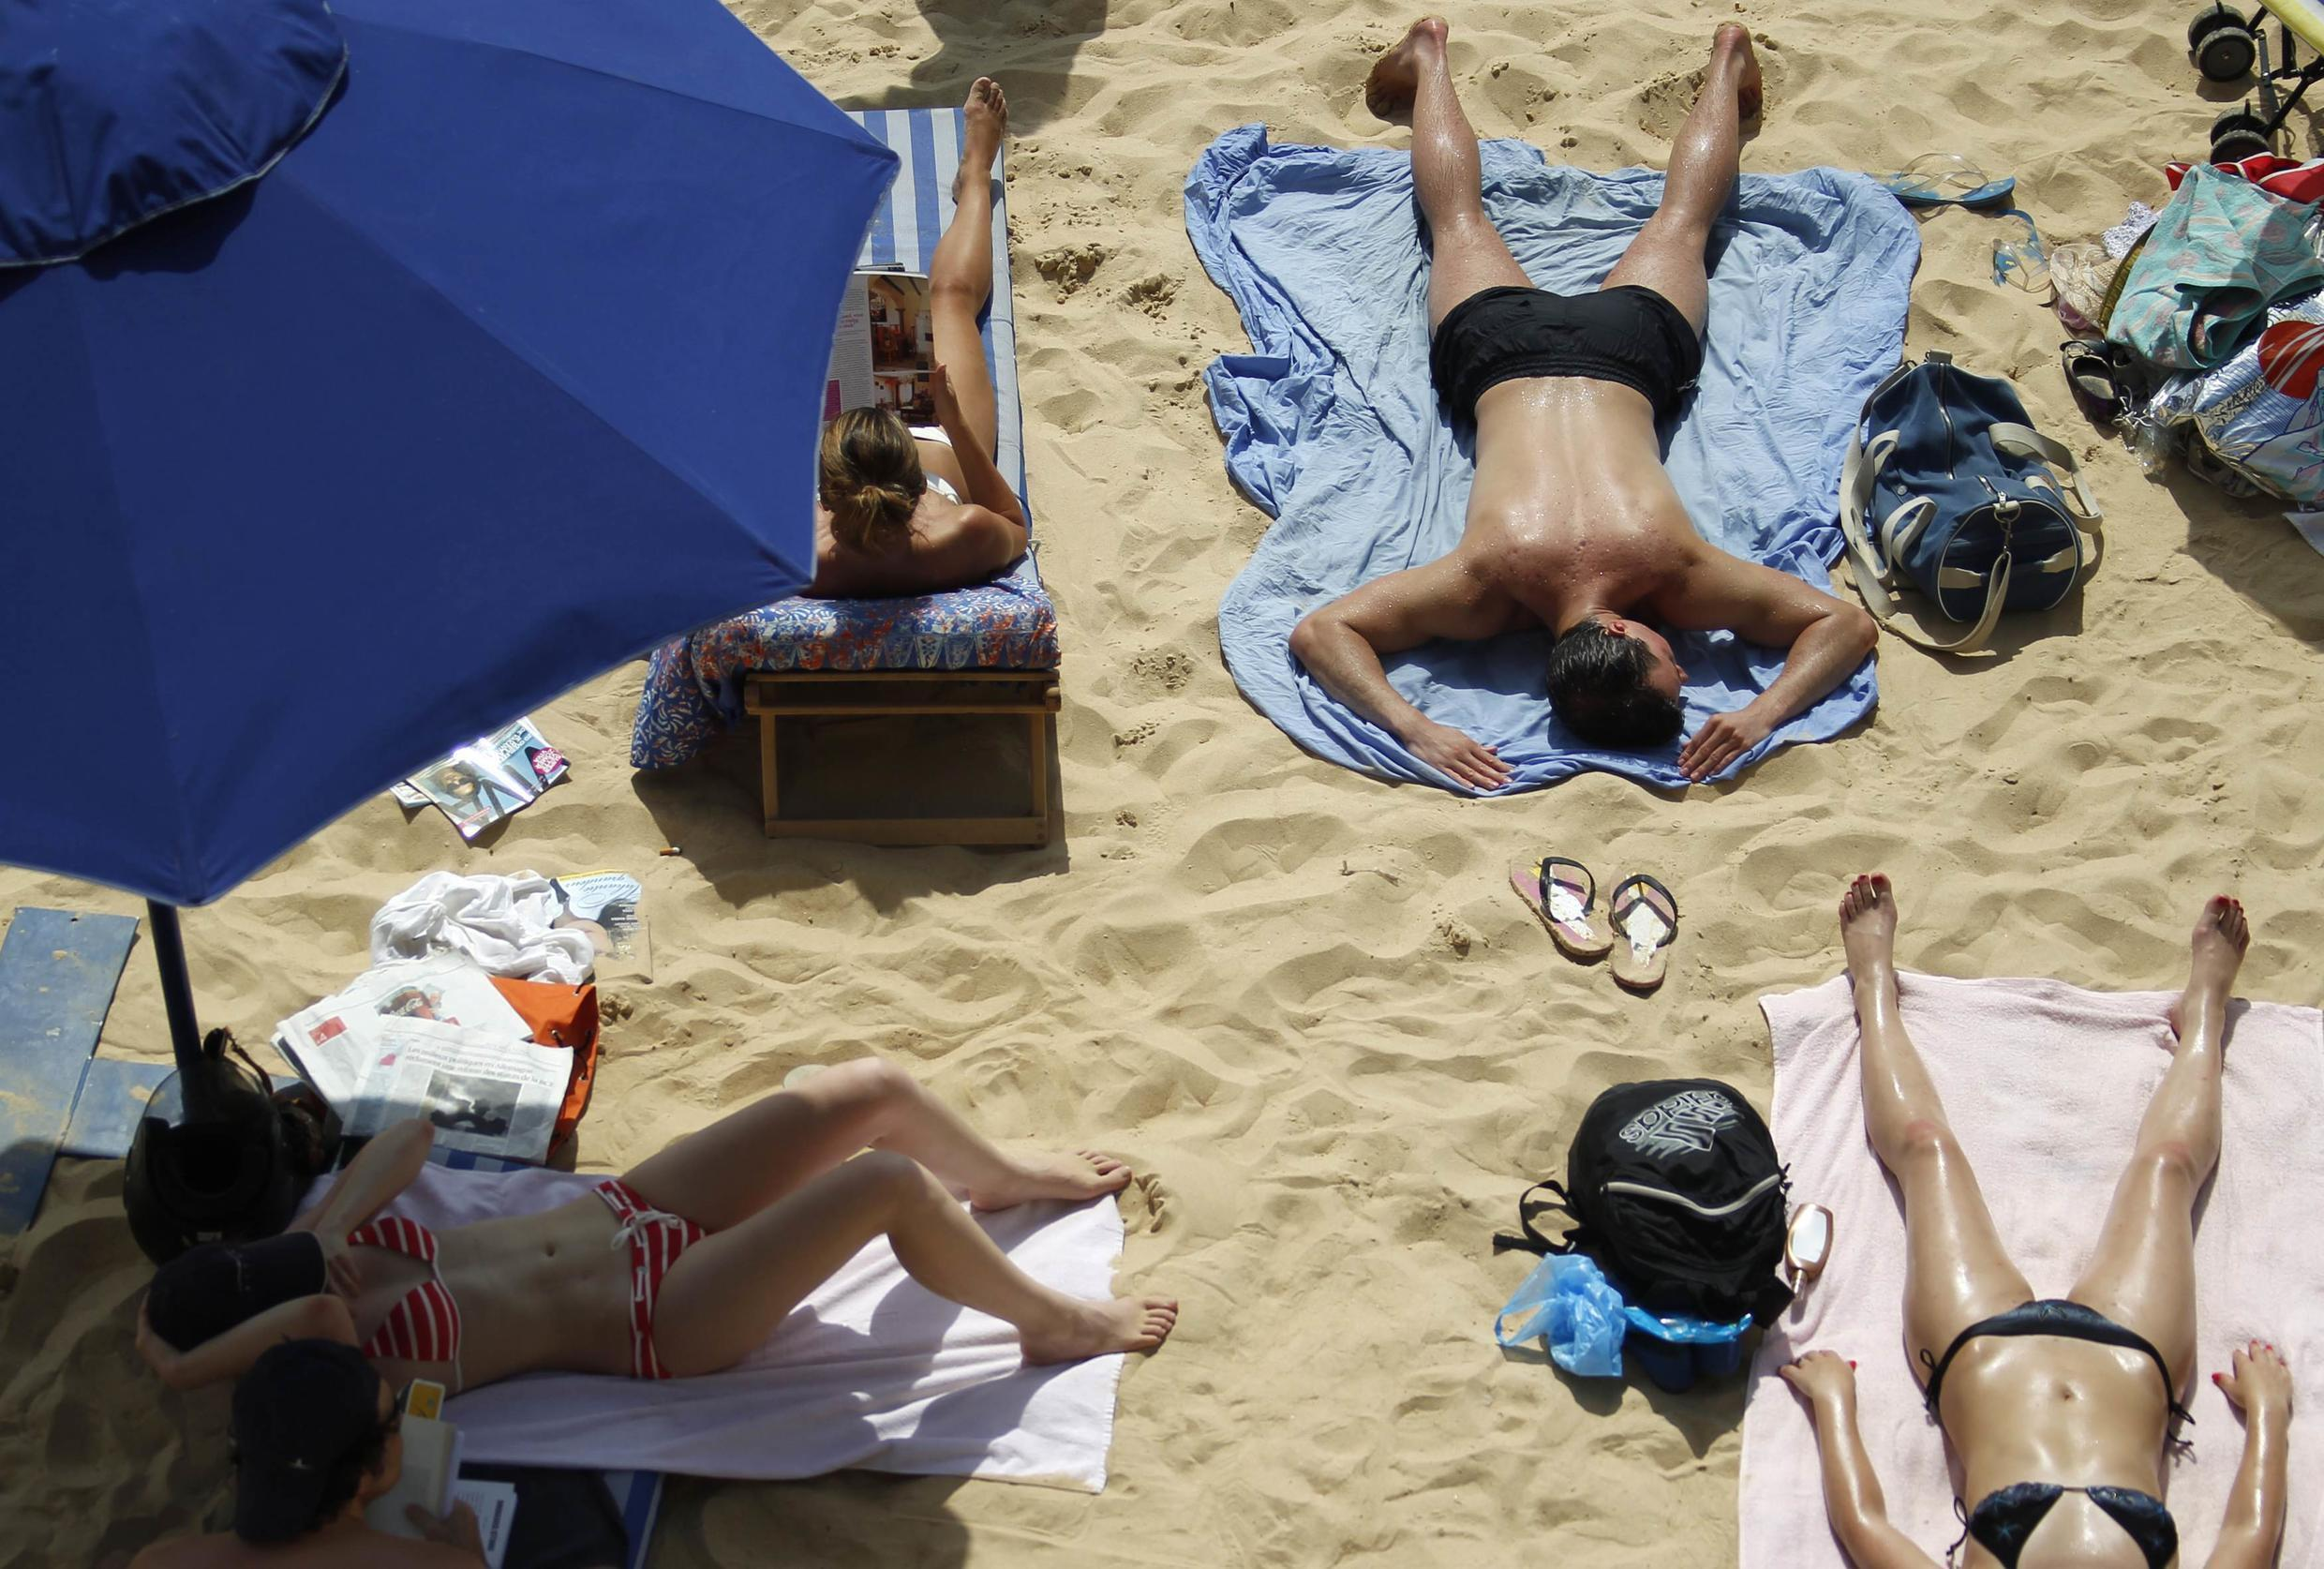 August is the tradition month for holidays in France. But taking time off is not an option for people struggling financially.